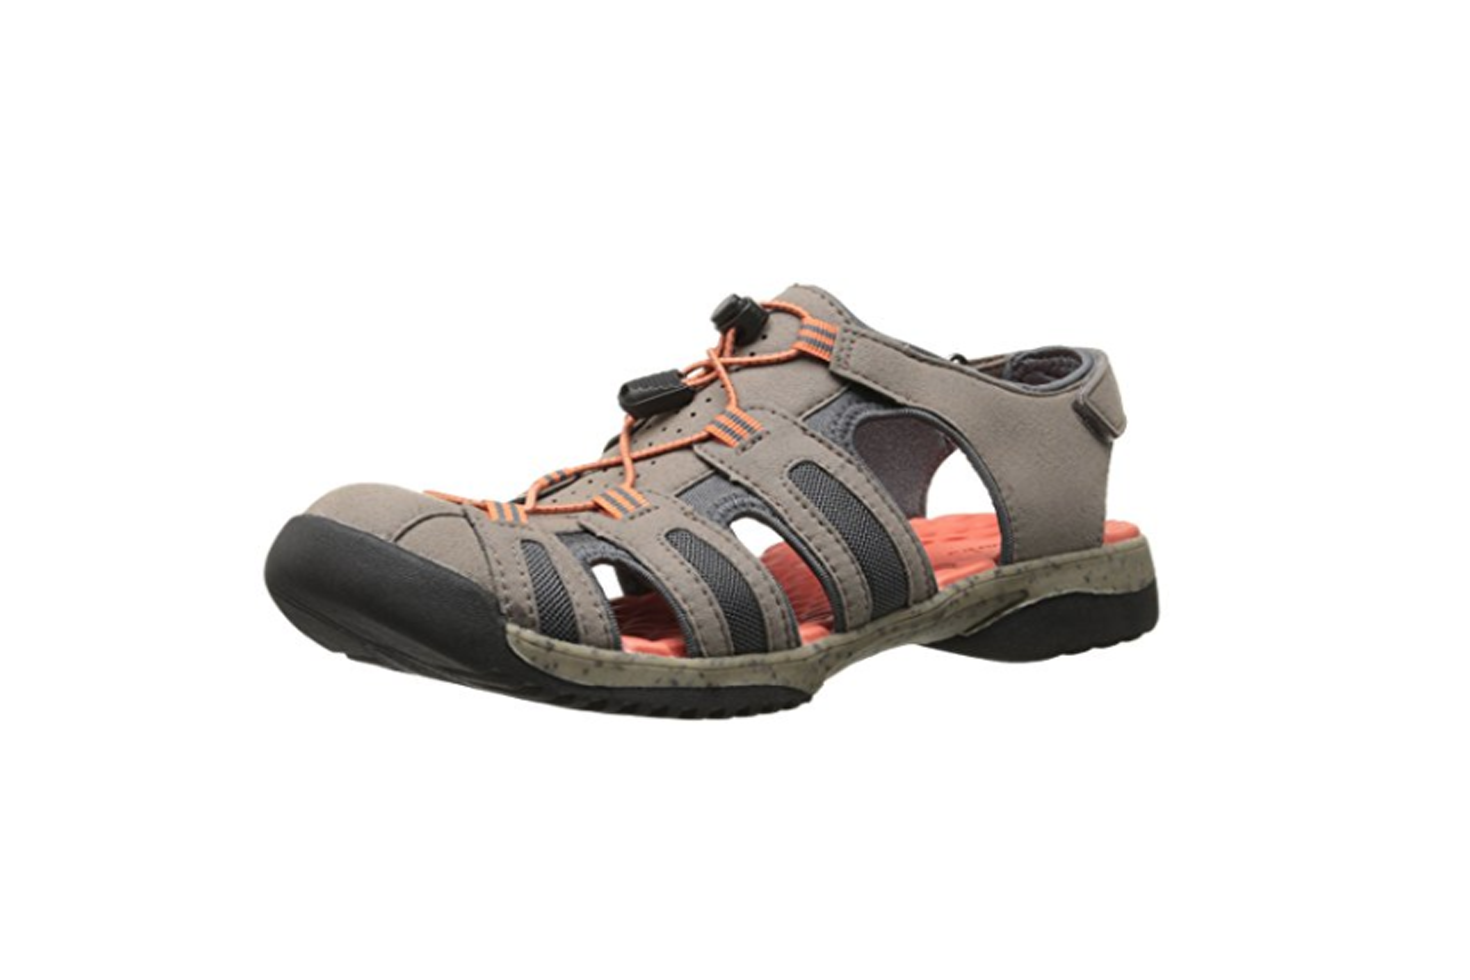 18 Best Hiking Sandals for Women - Top